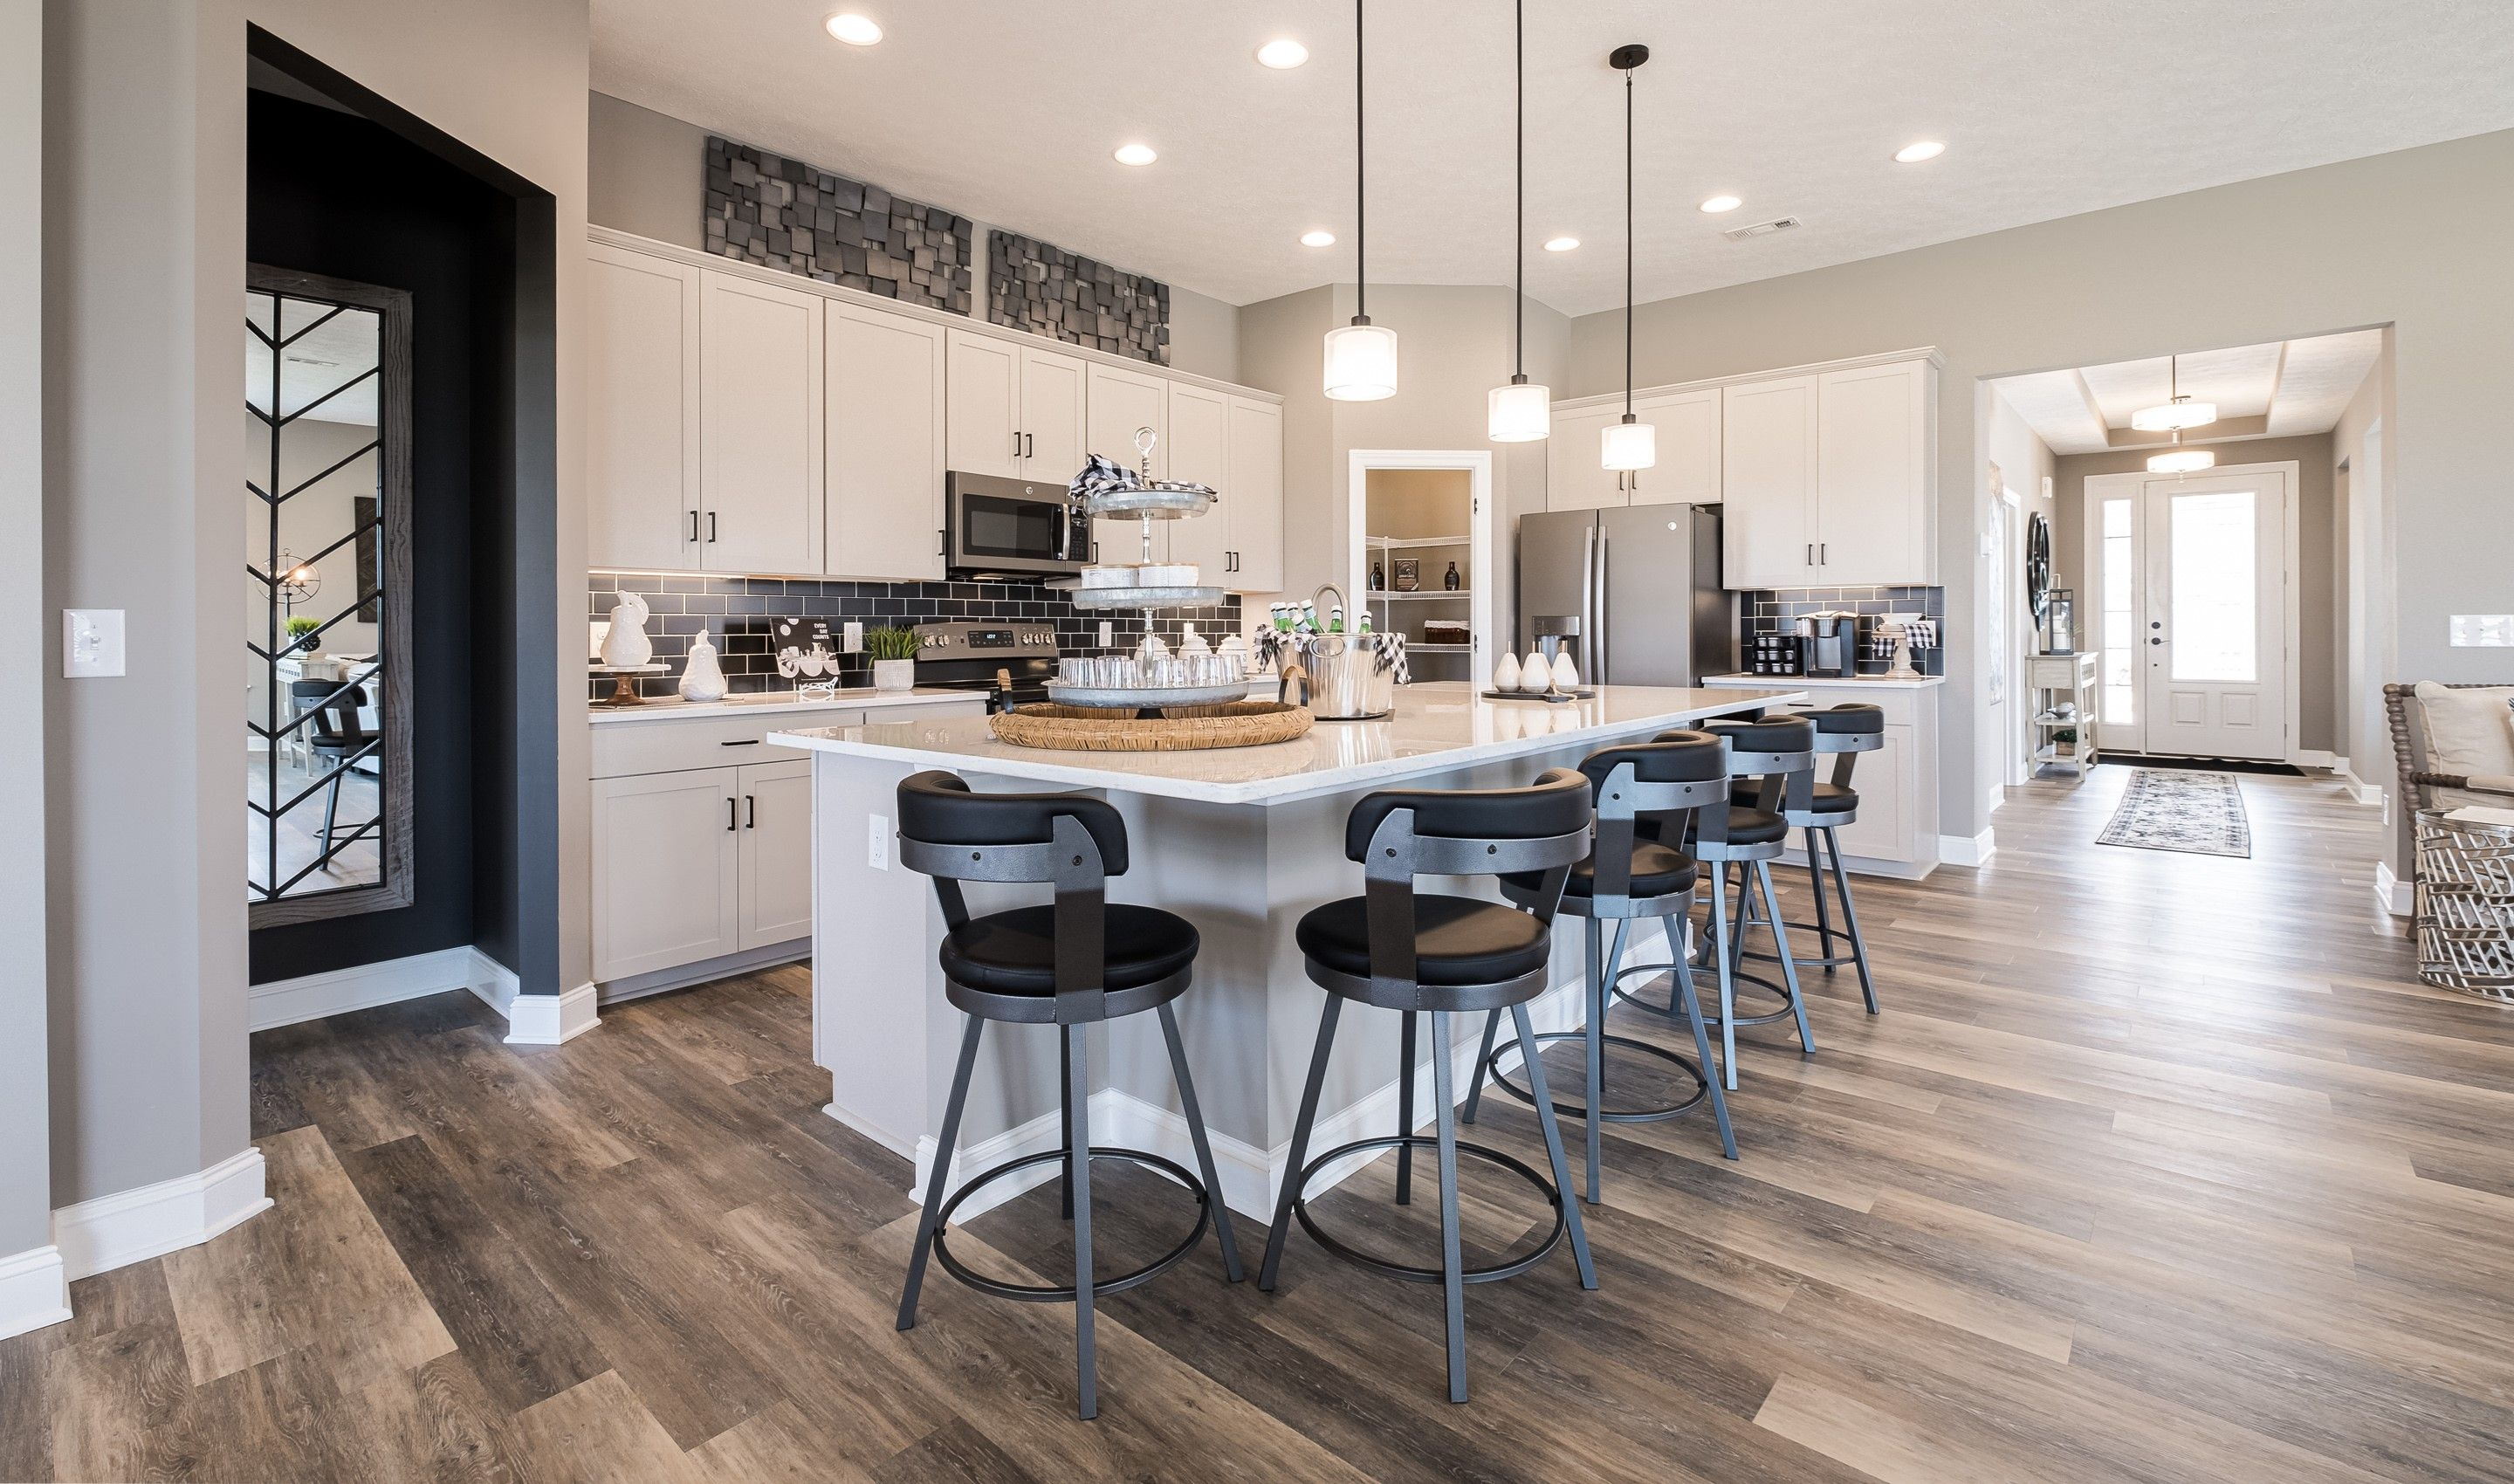 Kitchen featured in the Killarney By K. Hovnanian's® Four Seasons in Cleveland, OH